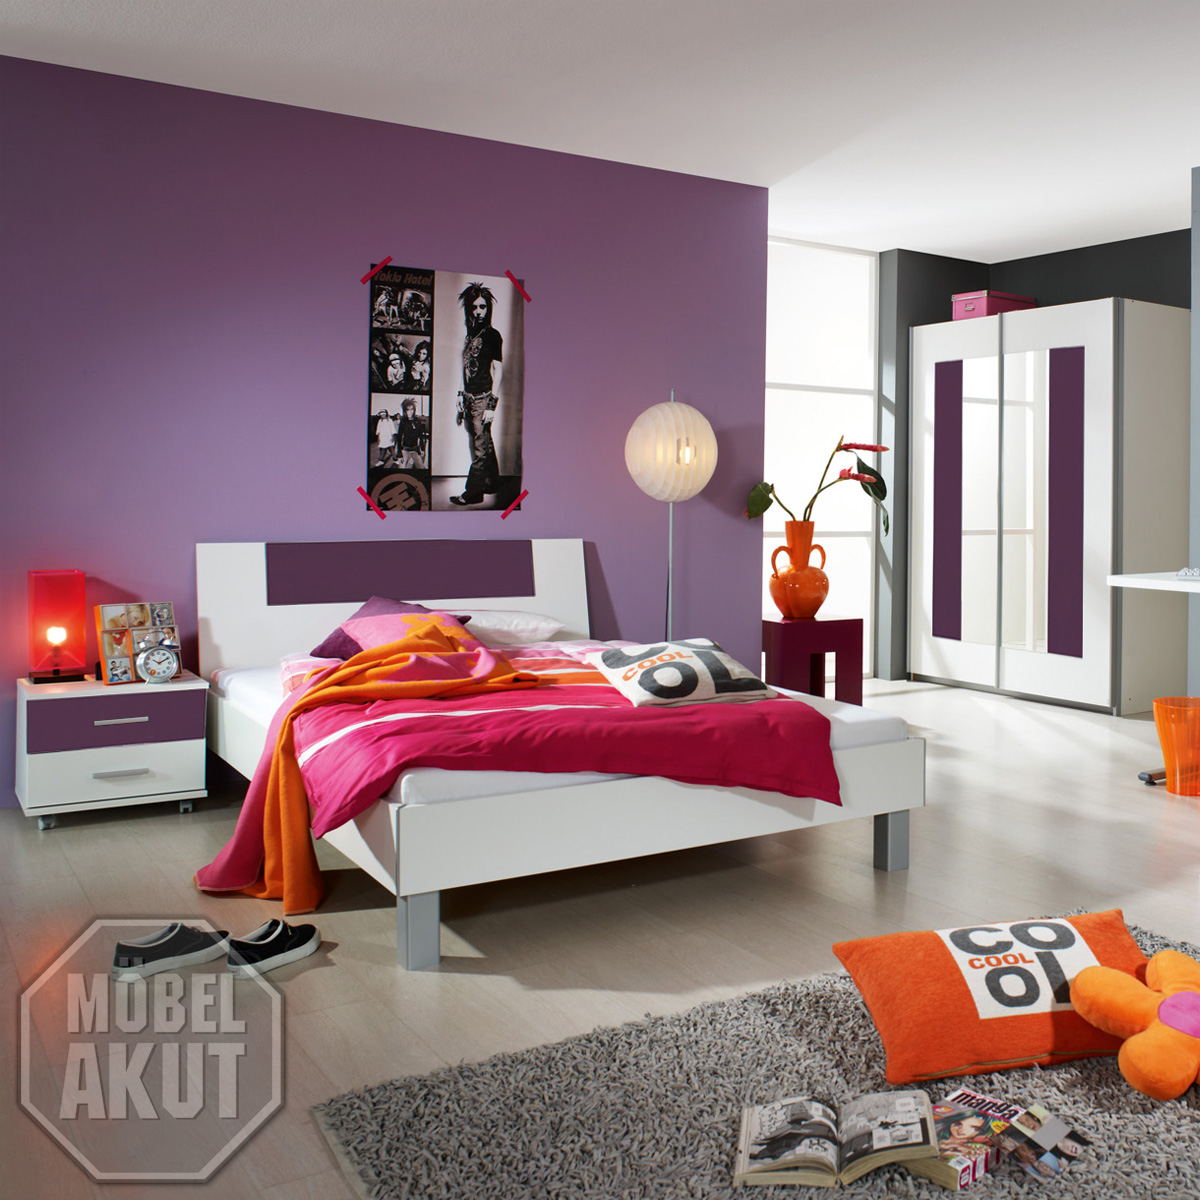 jugendzimmer fortuna kinderzimmer wei brombeer ebay. Black Bedroom Furniture Sets. Home Design Ideas